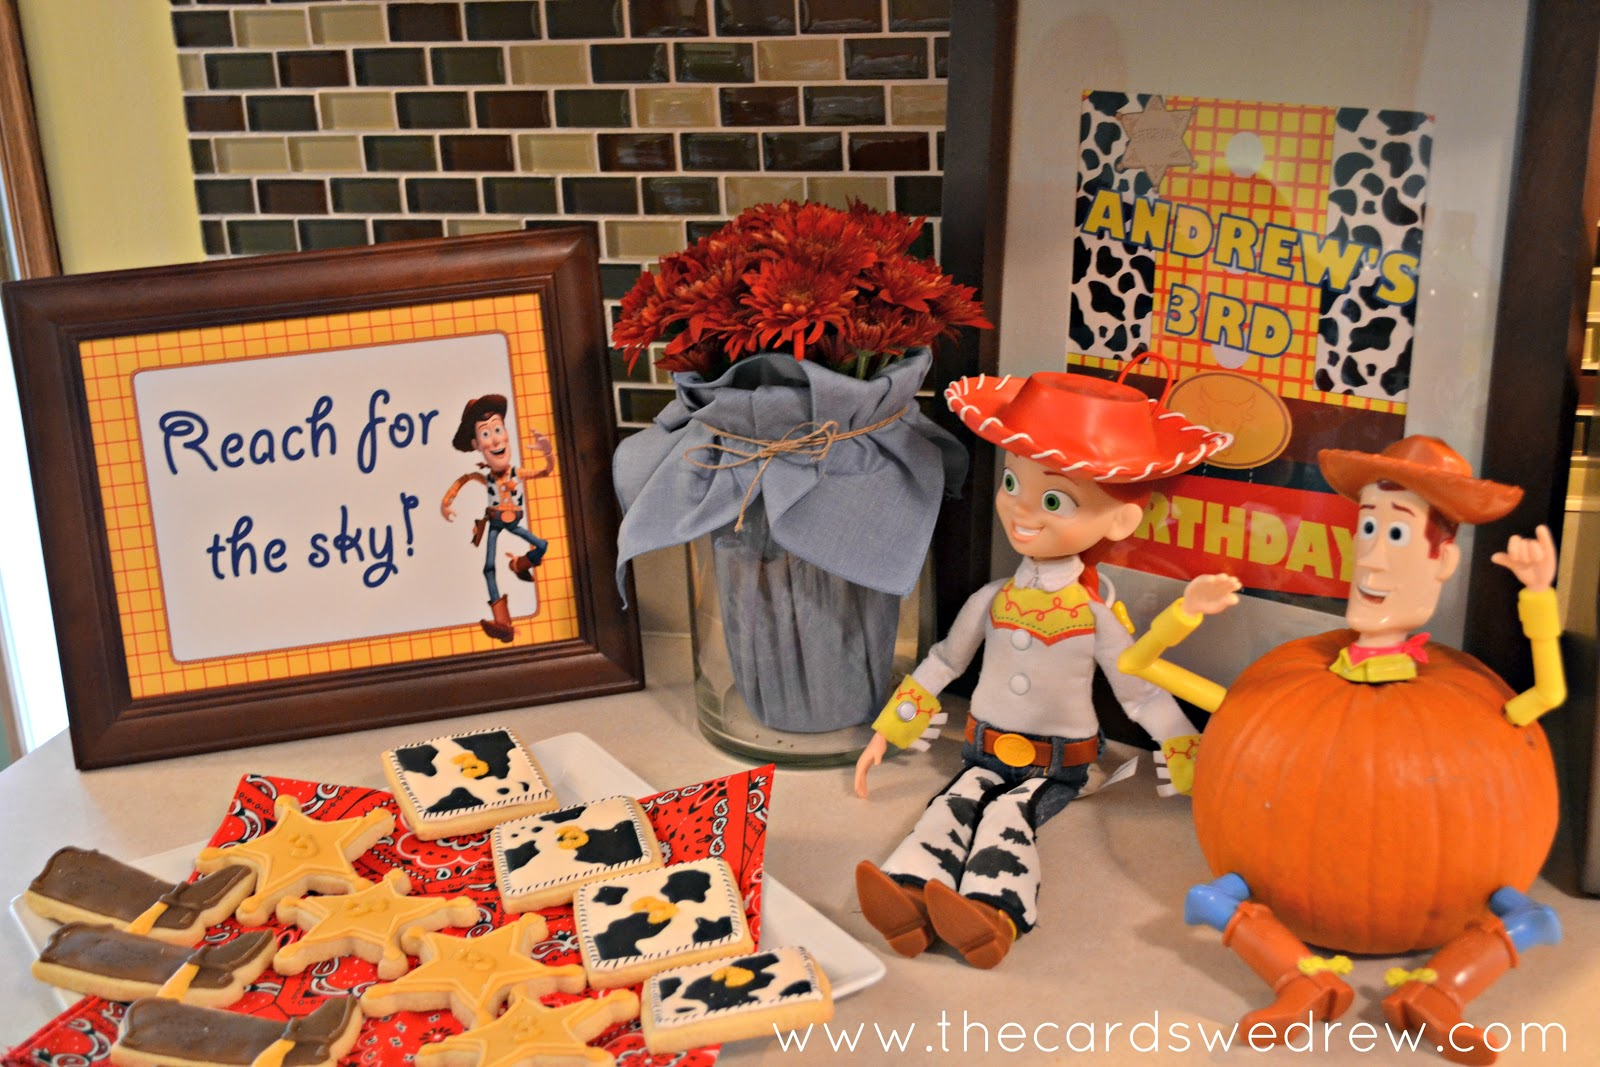 My Son's Toy Story Birthday Party - The Cards We Drew